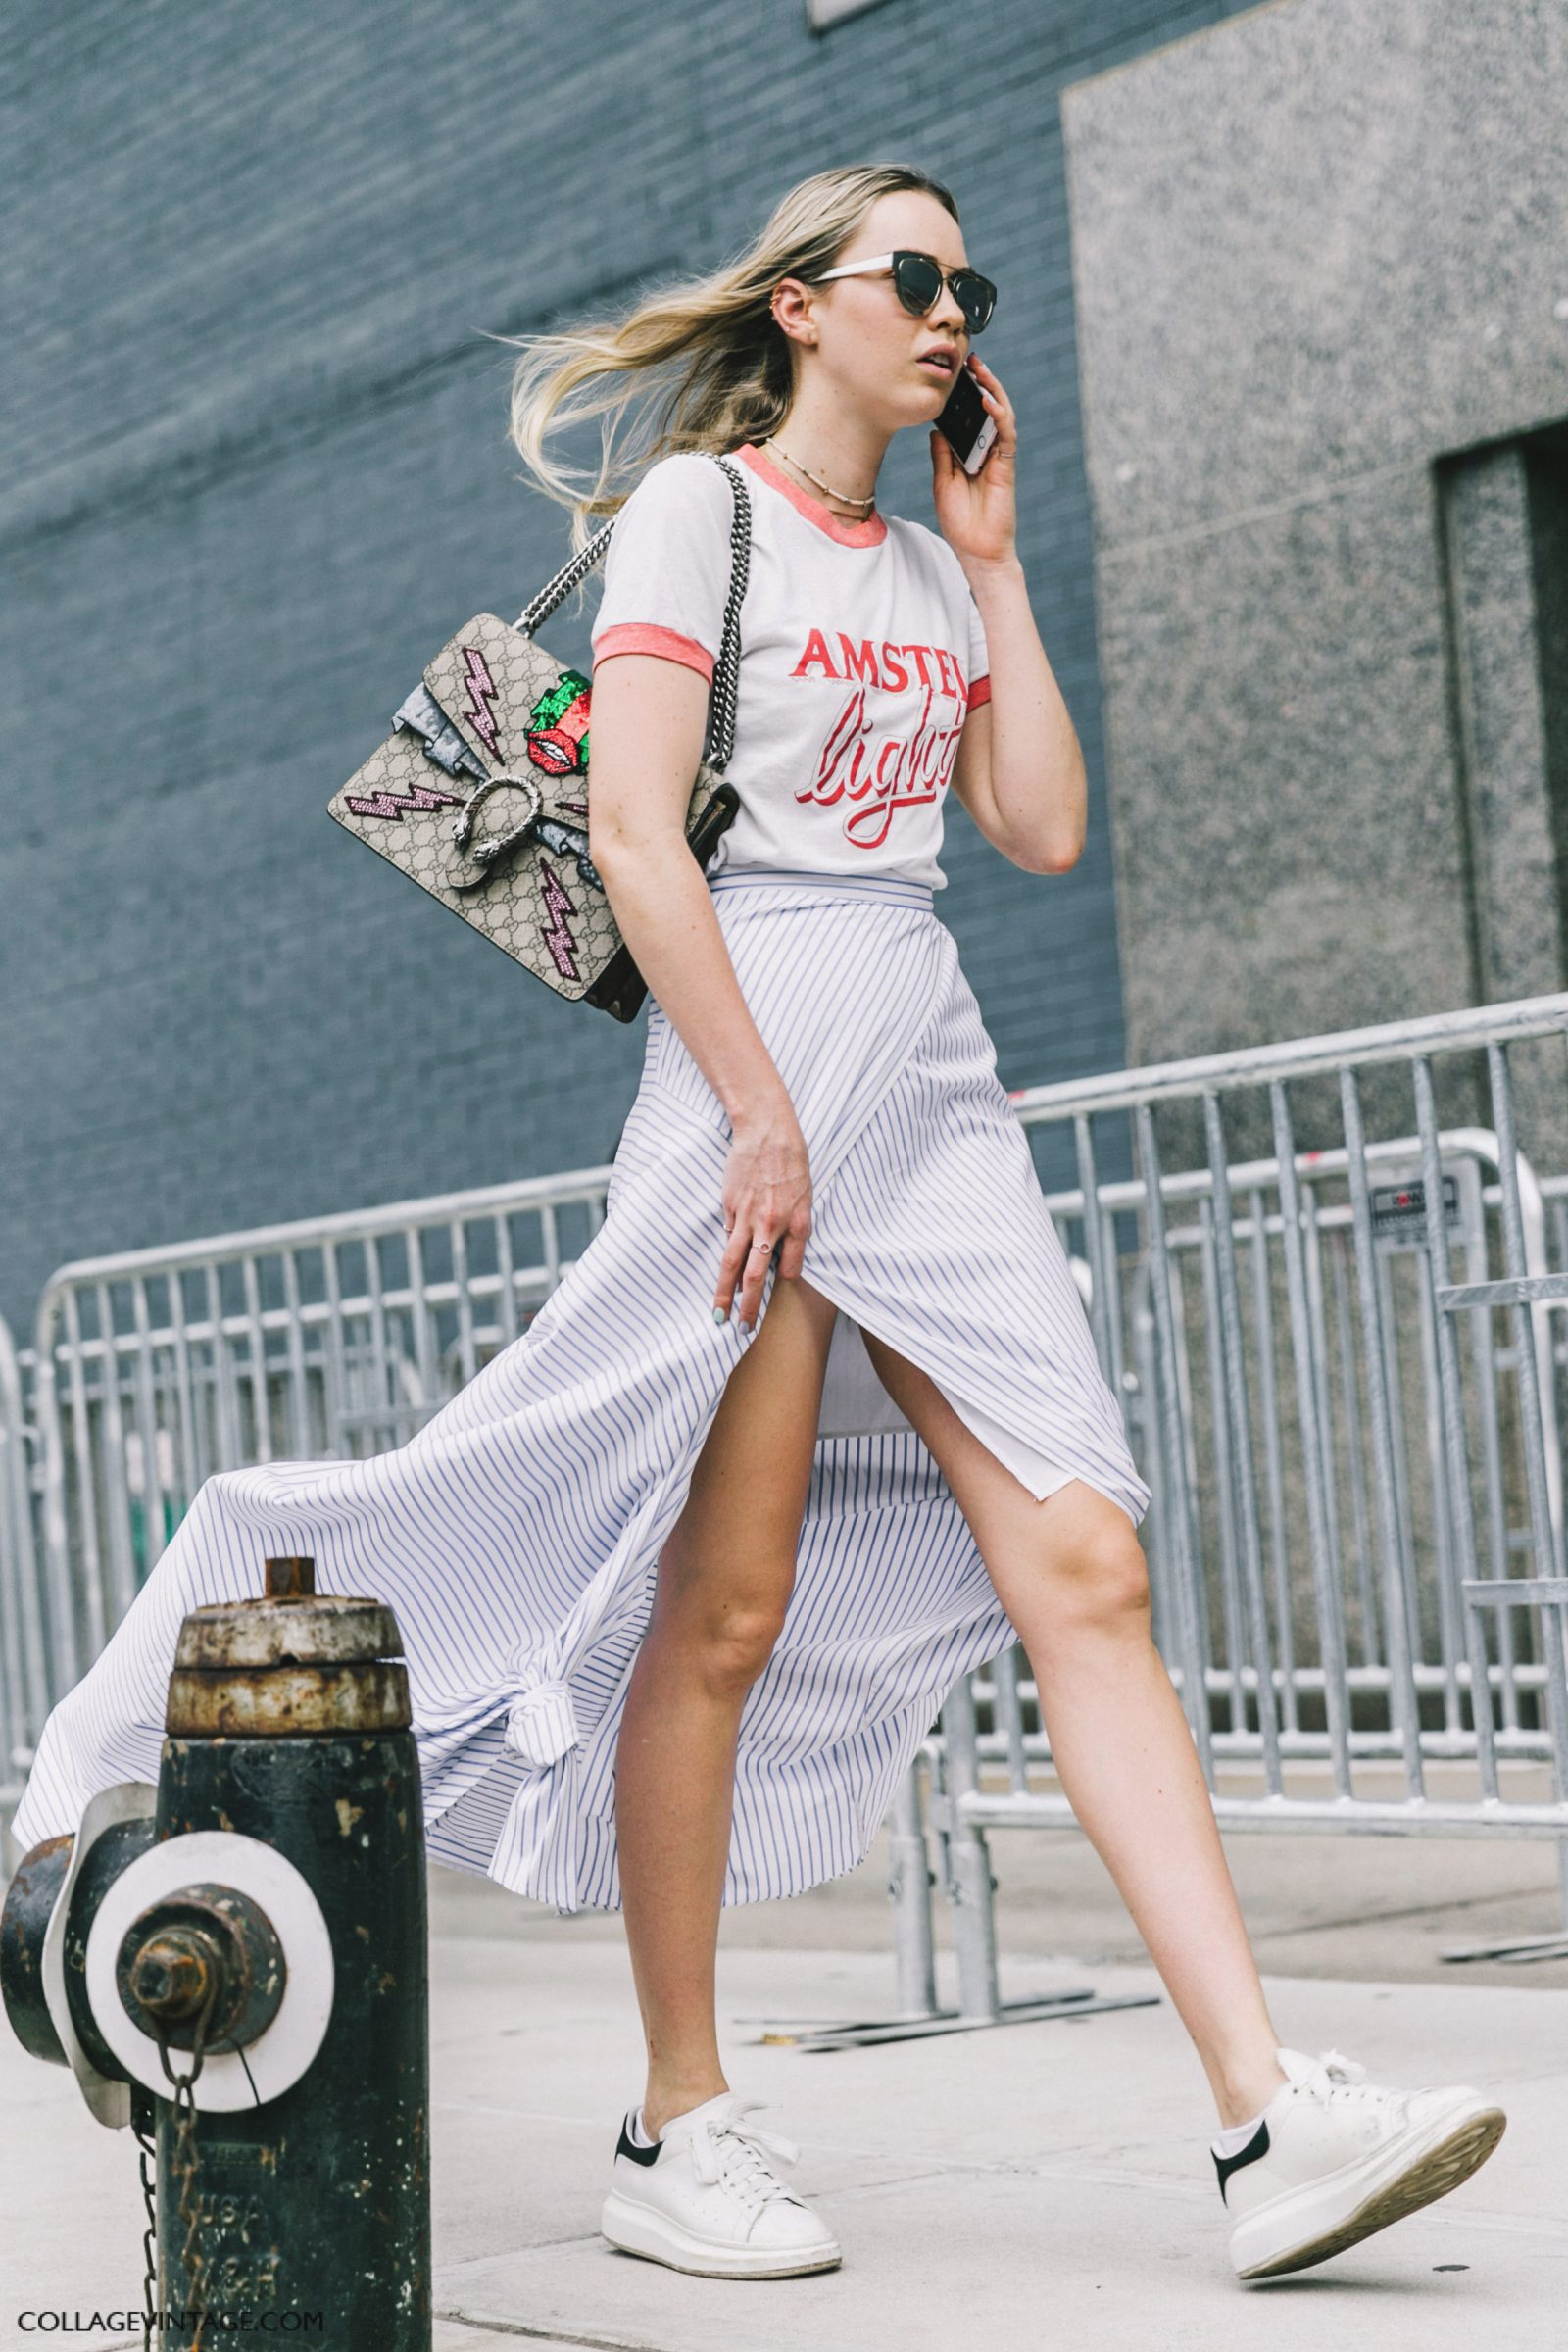 nyfw-new_york_fashion_week_ss17-street_style-outfits-collage_vintage-stripped_skirt-asymmetric_skirt-gucci_bag-retro_top-sneakers-9